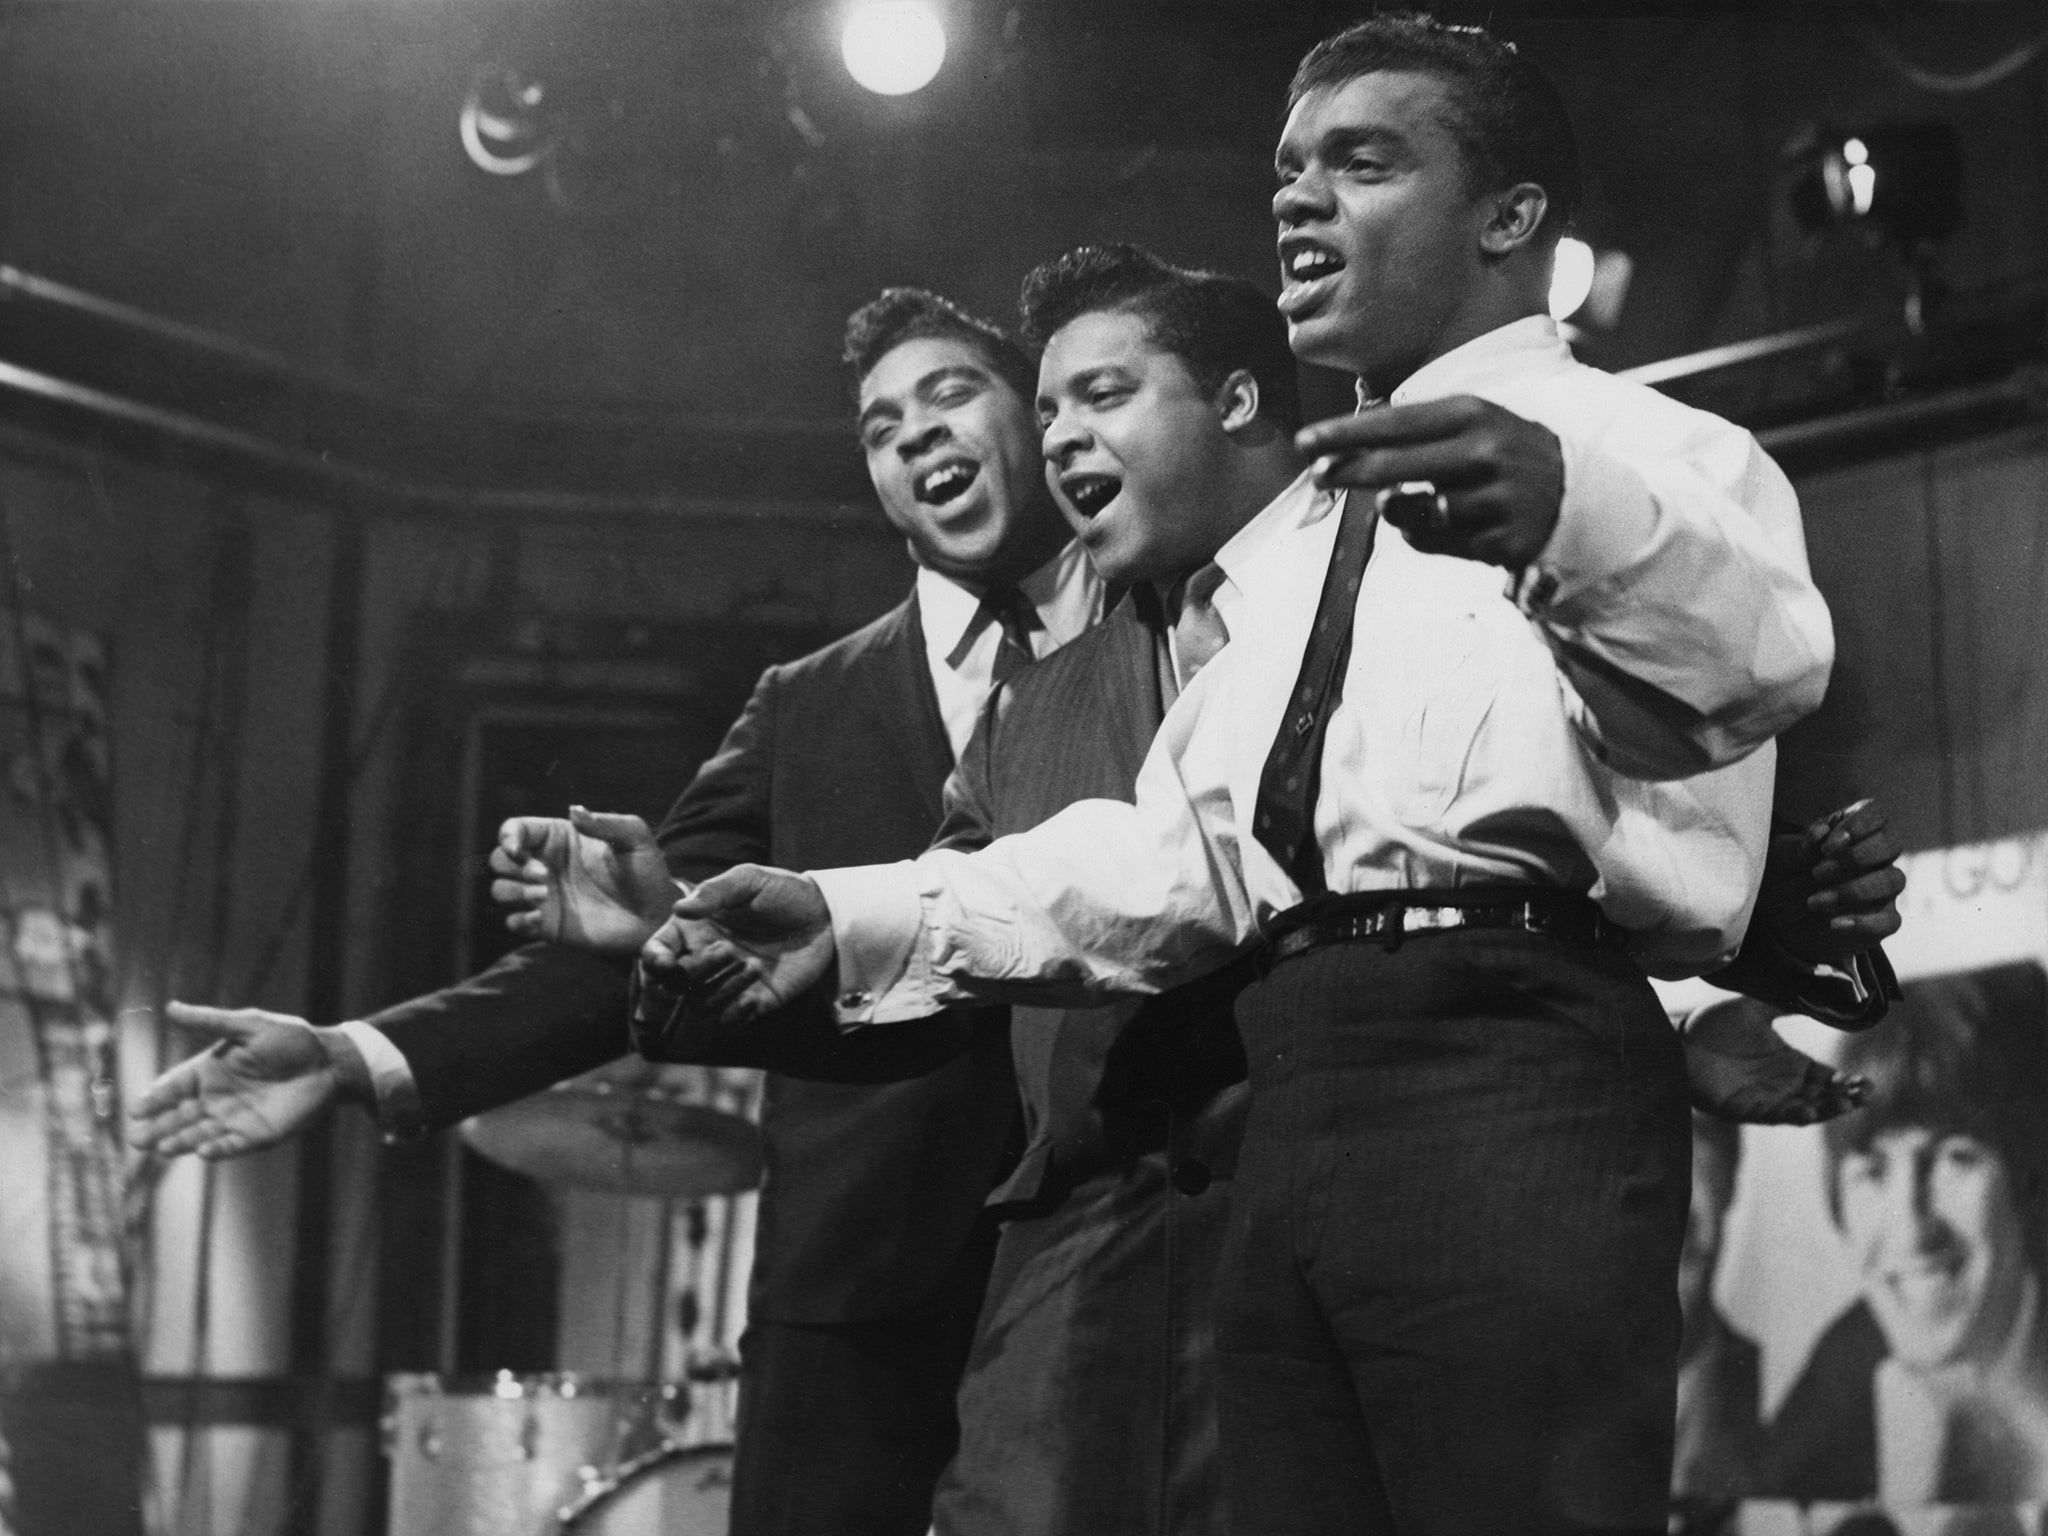 The 20 greatest Motown songs: From Barrett Strong to Marvin